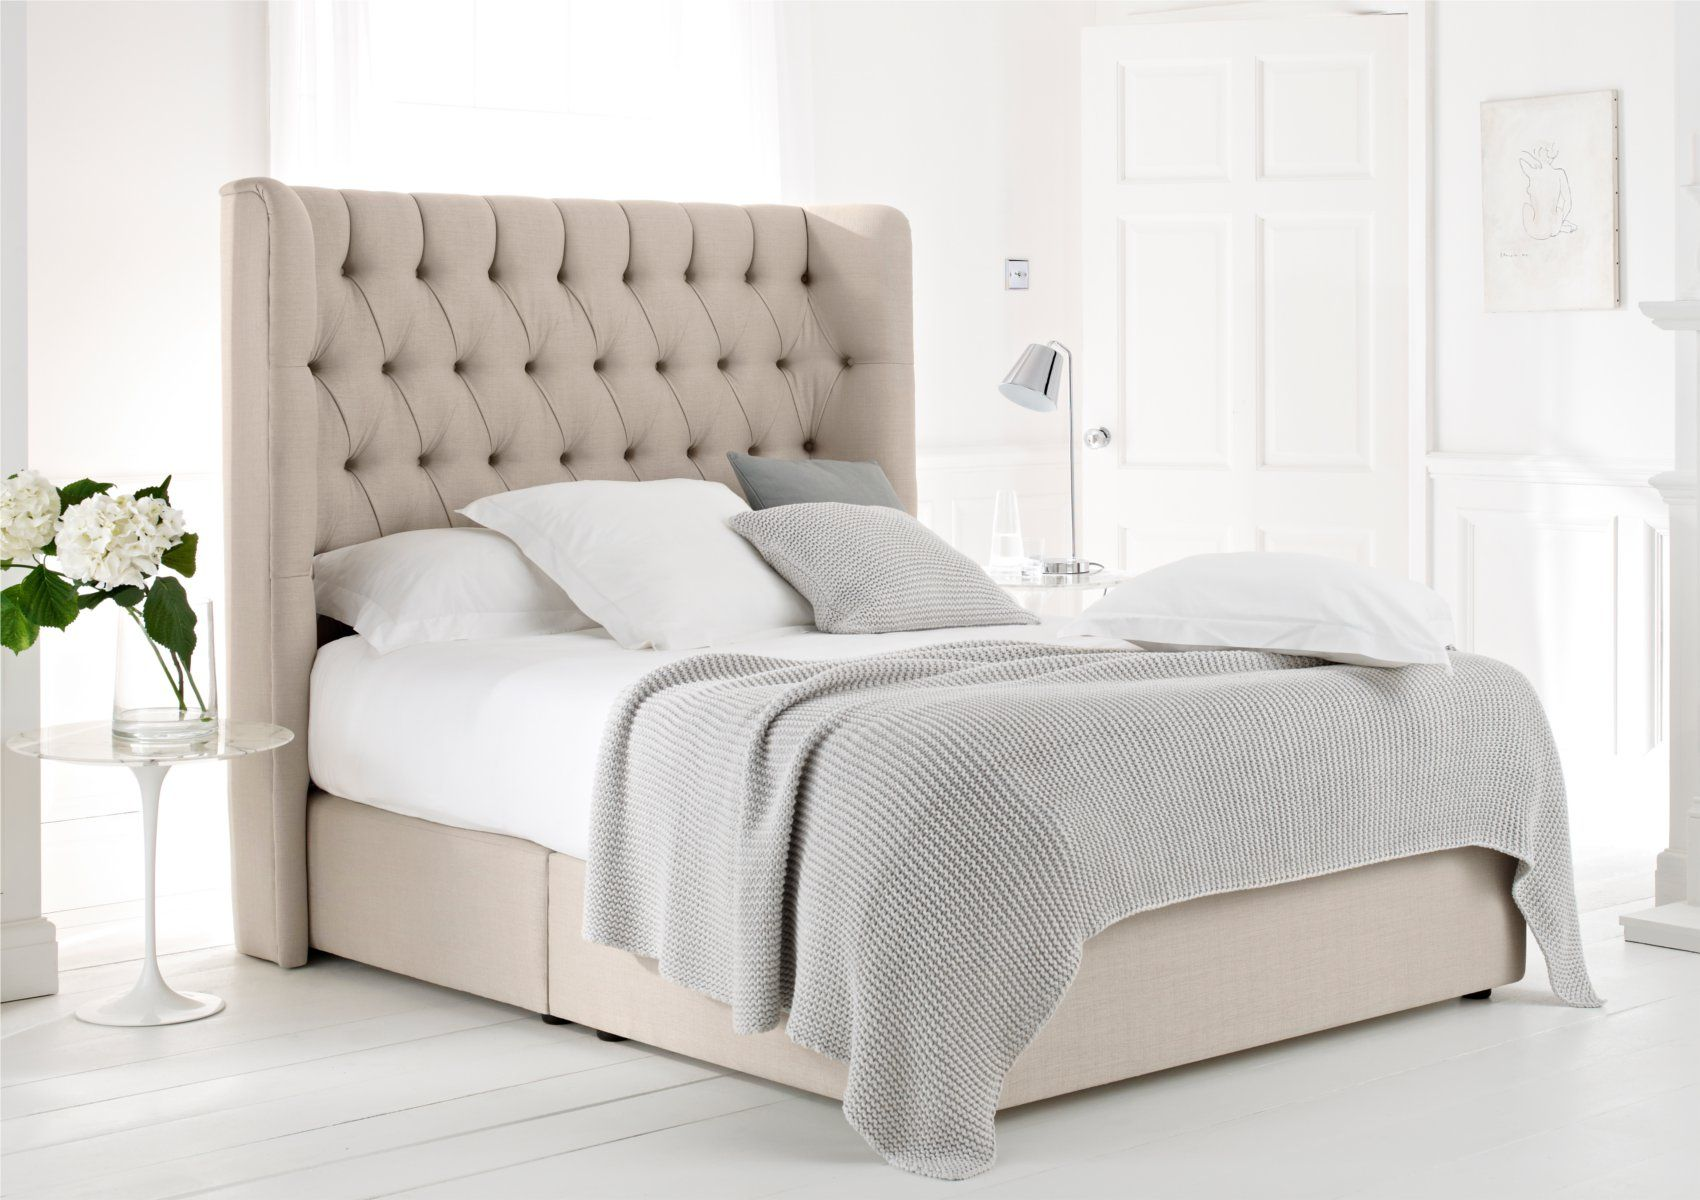 Google Images Of Upholstered King Size Headboards With Size Wings